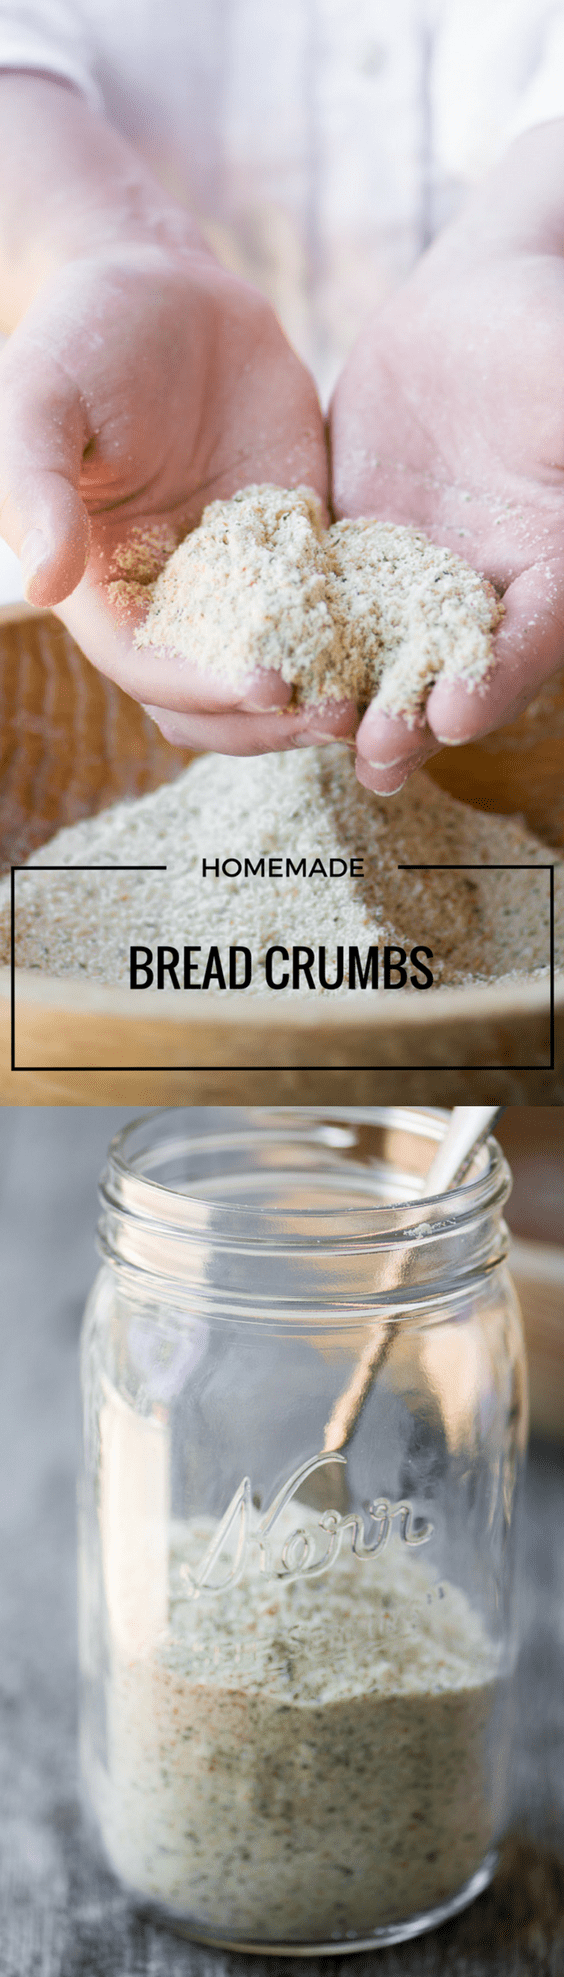 How to Make Homemade Bread Crumbs quickly and easily from any type of bread ~ fresh or dry, seasoned or unseasoned, whole grain, gluten free, even from crackers.  #diy #breadcrumbs #pantry #bread #crackers #matzo @glutenfreebreadcrumbs #herbedbreadcrumbs #freshbreadcrumbs #panko